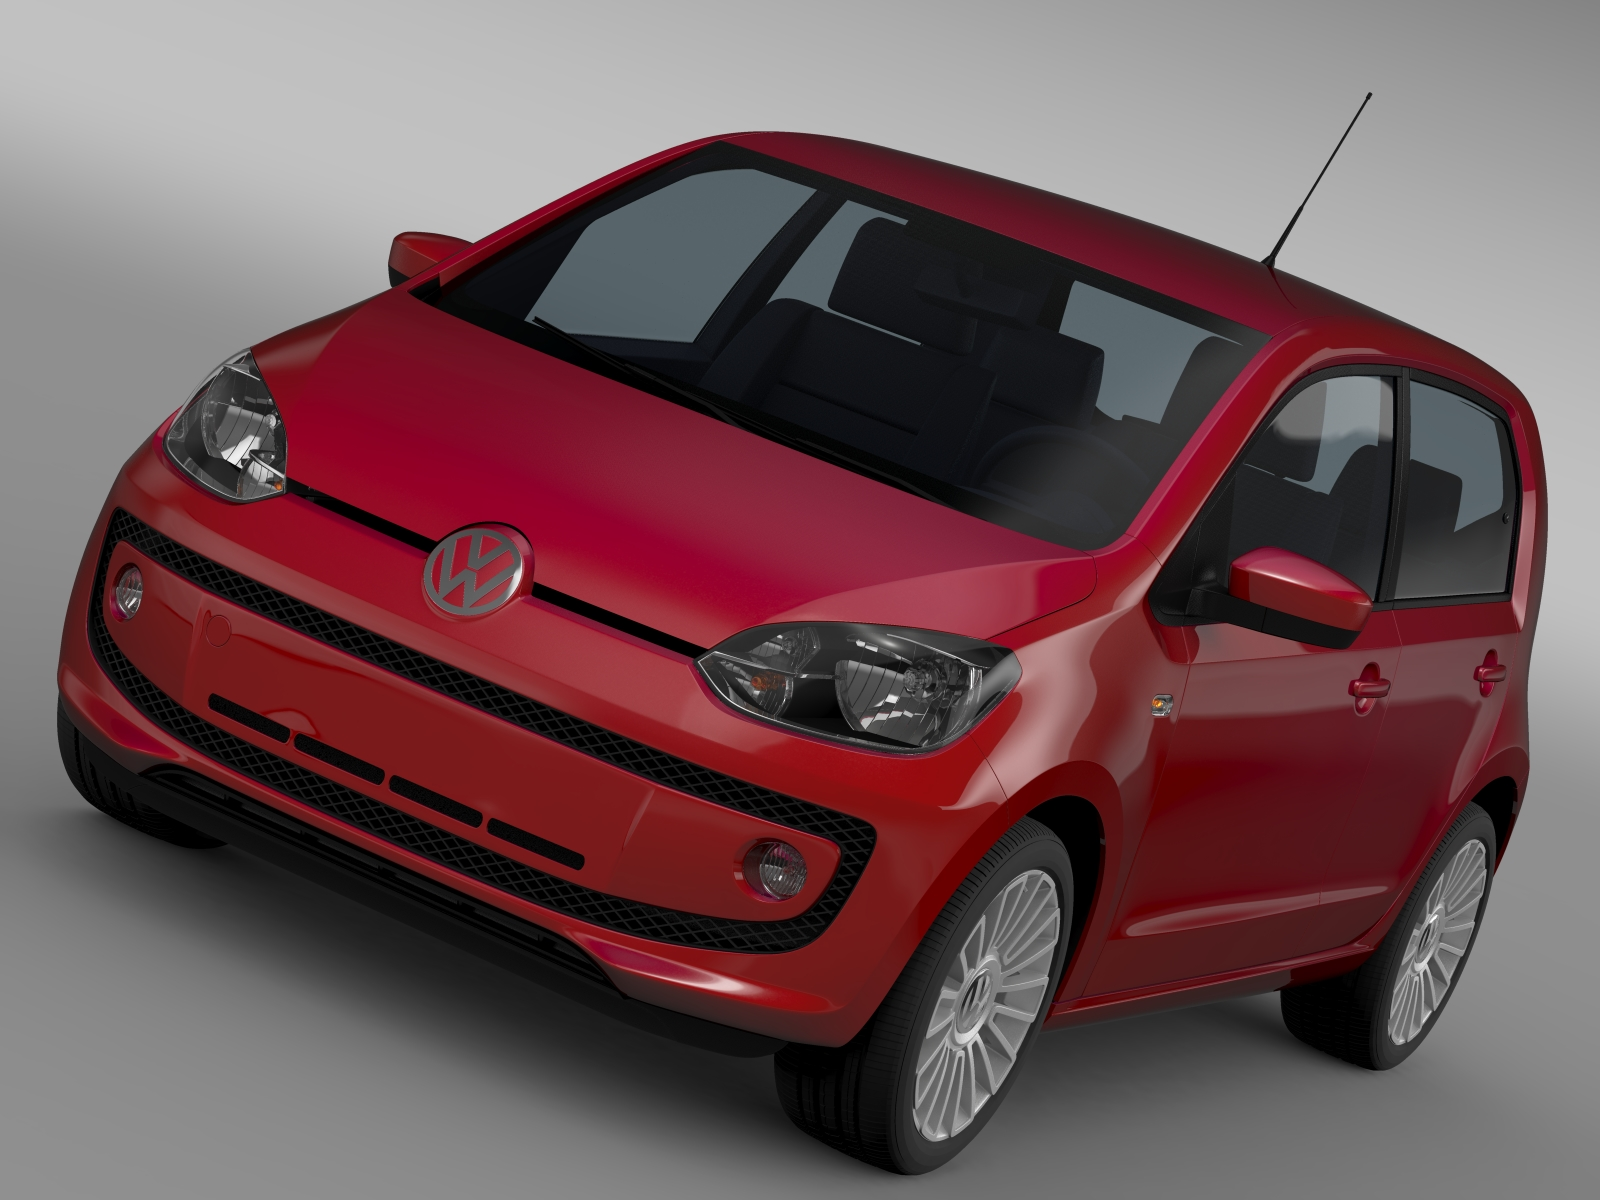 vw up 5 door 2012 3d model 3ds max fbx c4d lwo ma mb hrc xsi obj 209149